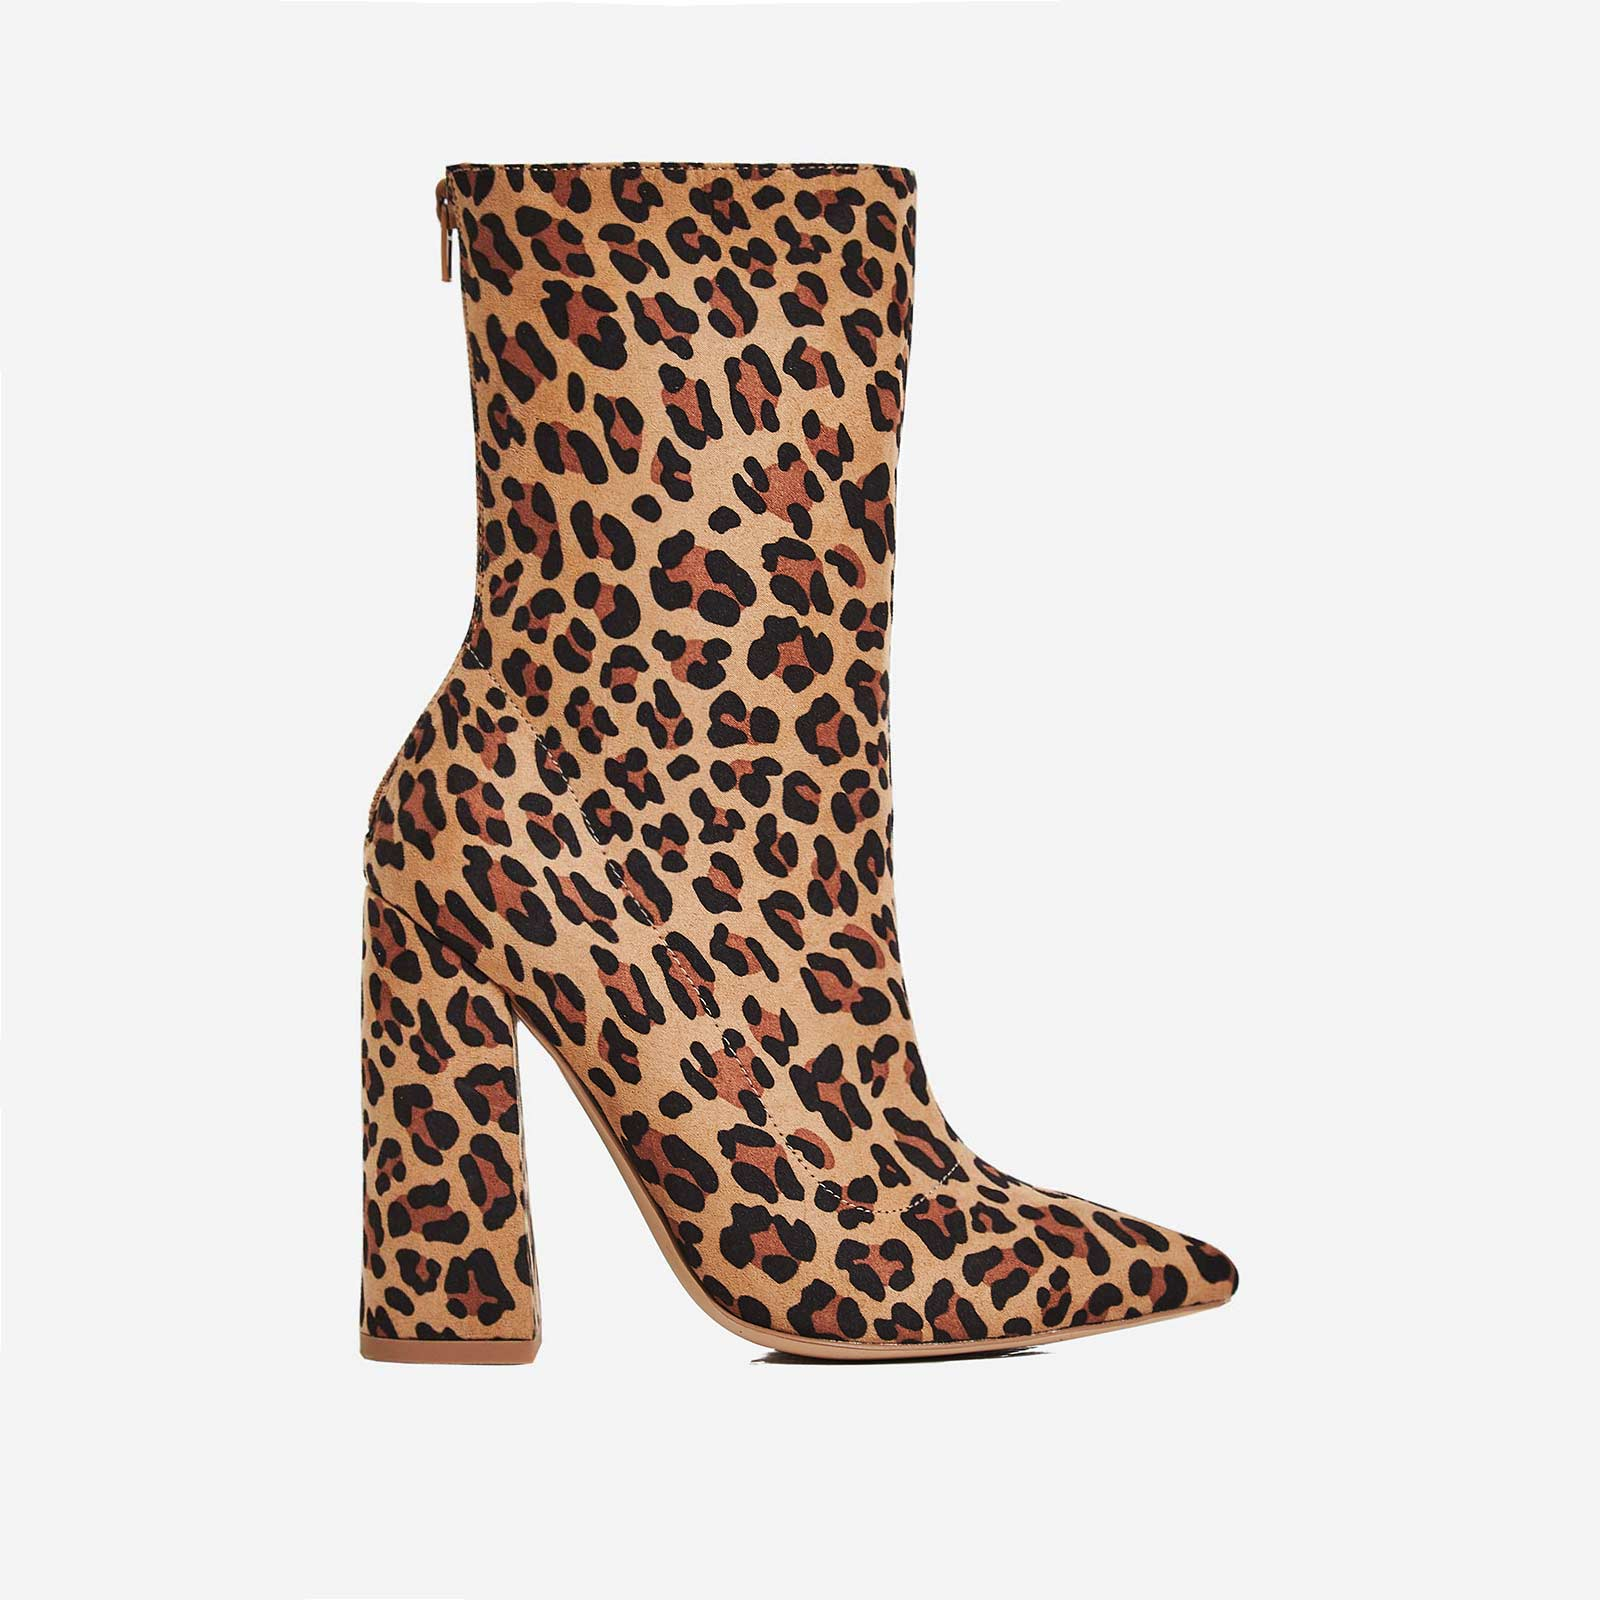 Larsa Block Heel Ankle Boot In Tan Leopard Print Faux Suede